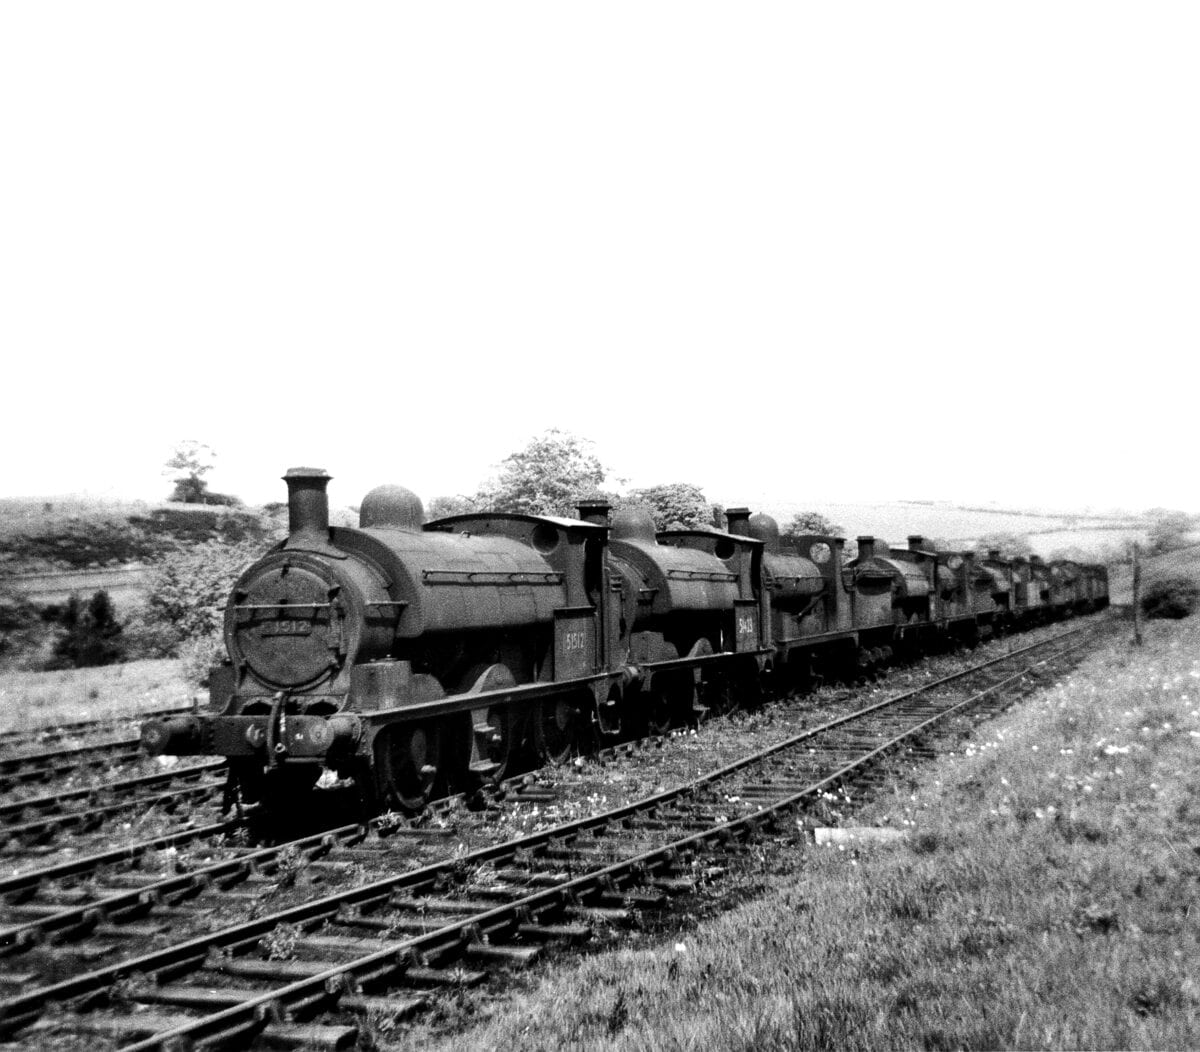 The sight that greeted us as we entered the Royal Ordnance Factory sidings at Heapey on May 16, 1959 – 15-old-steam locomotives dumped in the countryside unwanted and with nowhere to go. Left to right are: Nos. 51512, 51423, 52216, 51415, 52268, 51457, 50647, 51404, 52237, 43890, 51546, 50712, 43984, 51316 and 40178. Most, if not all, will have been to Horwich Works first where they will have been formally condemned before being towed out to Heapey in varying stages of incapacitation to await disposal. The leading four locomotives were among the first to be sent to Heapey. No. 51512 was ex-Gorton from where it had been withdrawn in July 1958. Built by Beyer Peacock in February 1882 it was one of the 0-6-0 tender engines to be converted in January 1899 to a saddle tank. It eventually departed for the Central Wagon Co at Ince near Wigan, possibly being the first BR loco to go there.